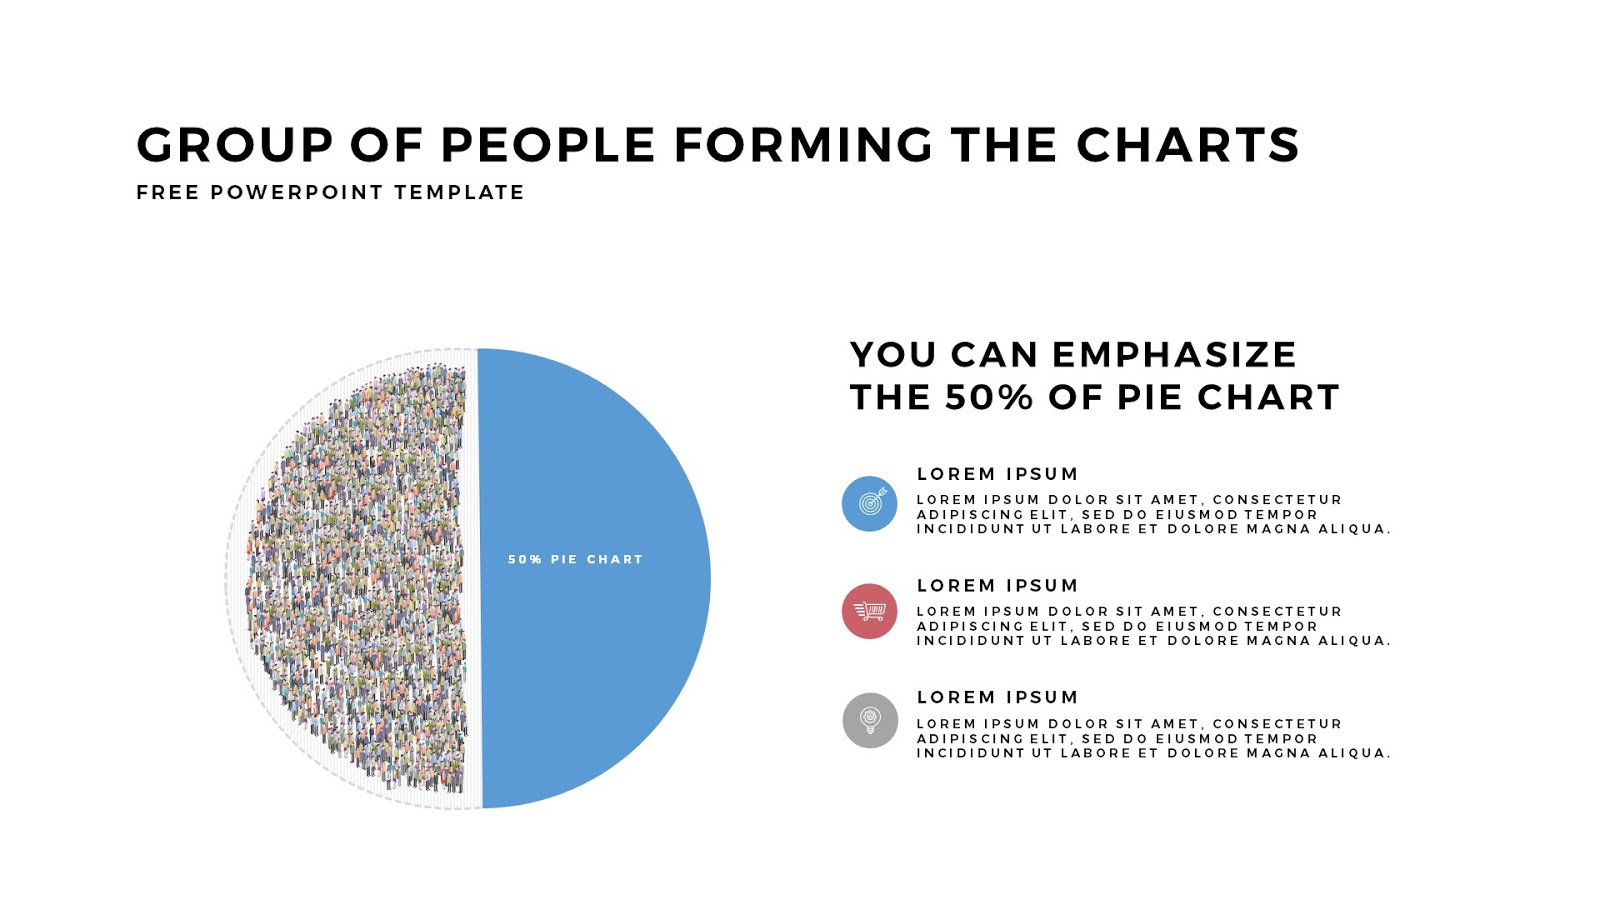 Free powerpoint template with large group of people forming the free powerpoint template with group of people forming the pie chart for emphasize 50 business nvjuhfo Image collections